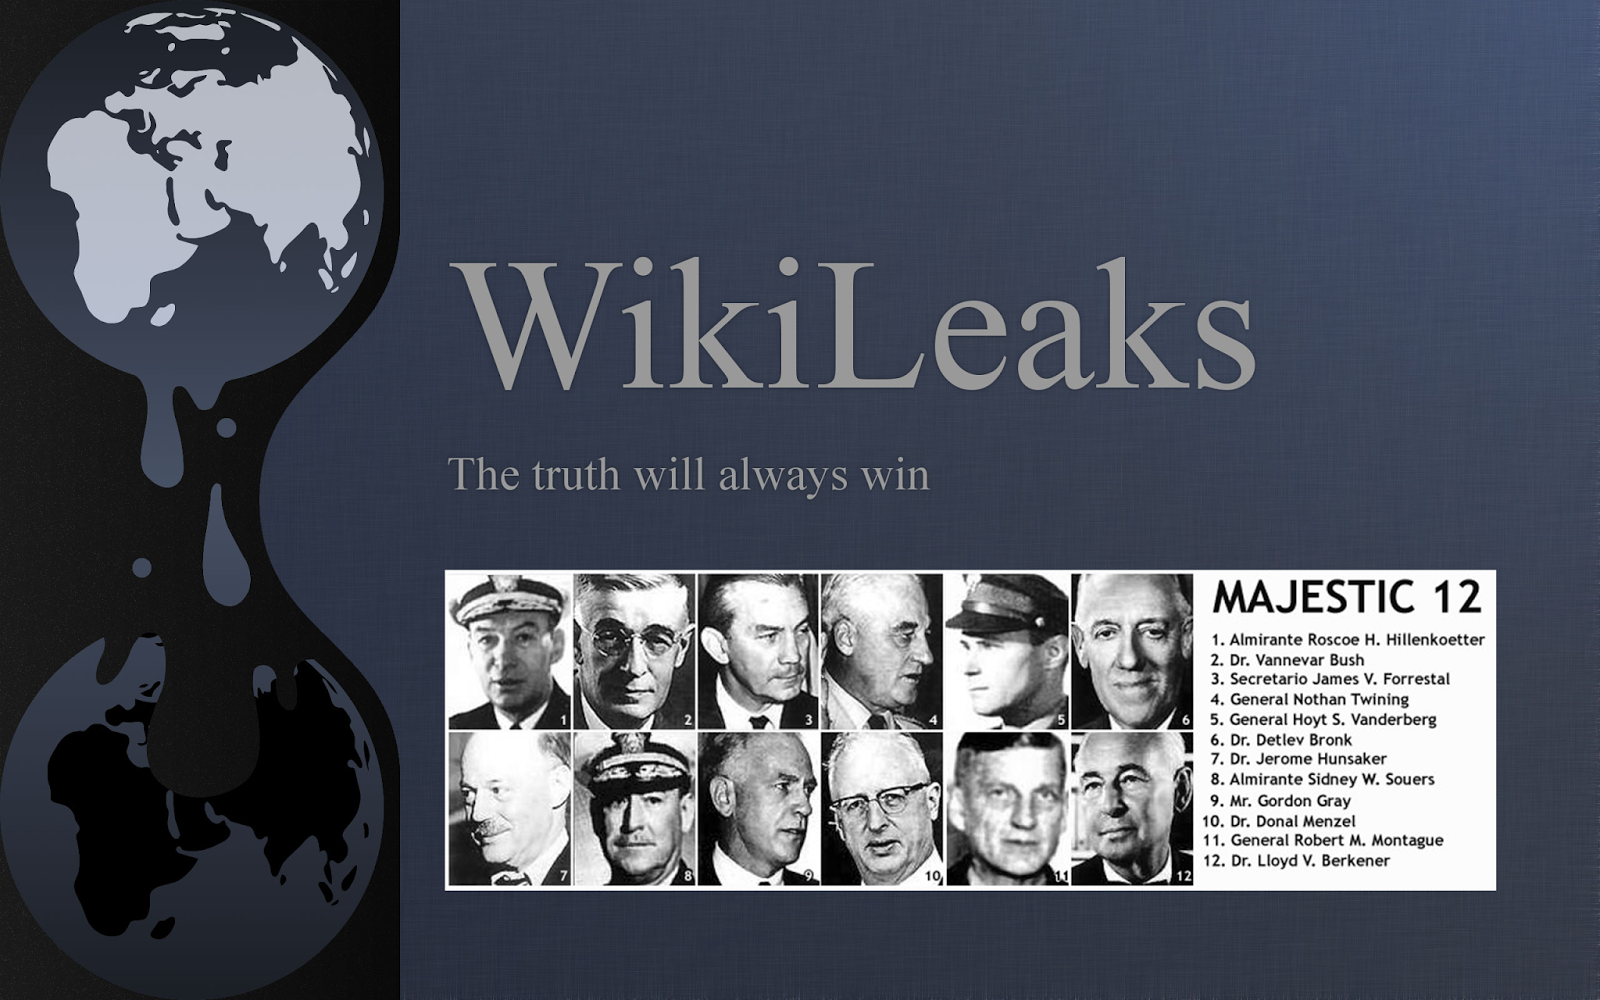 Majestic 12 Documents Are Real - Wikileaks Stratfor UFO Files